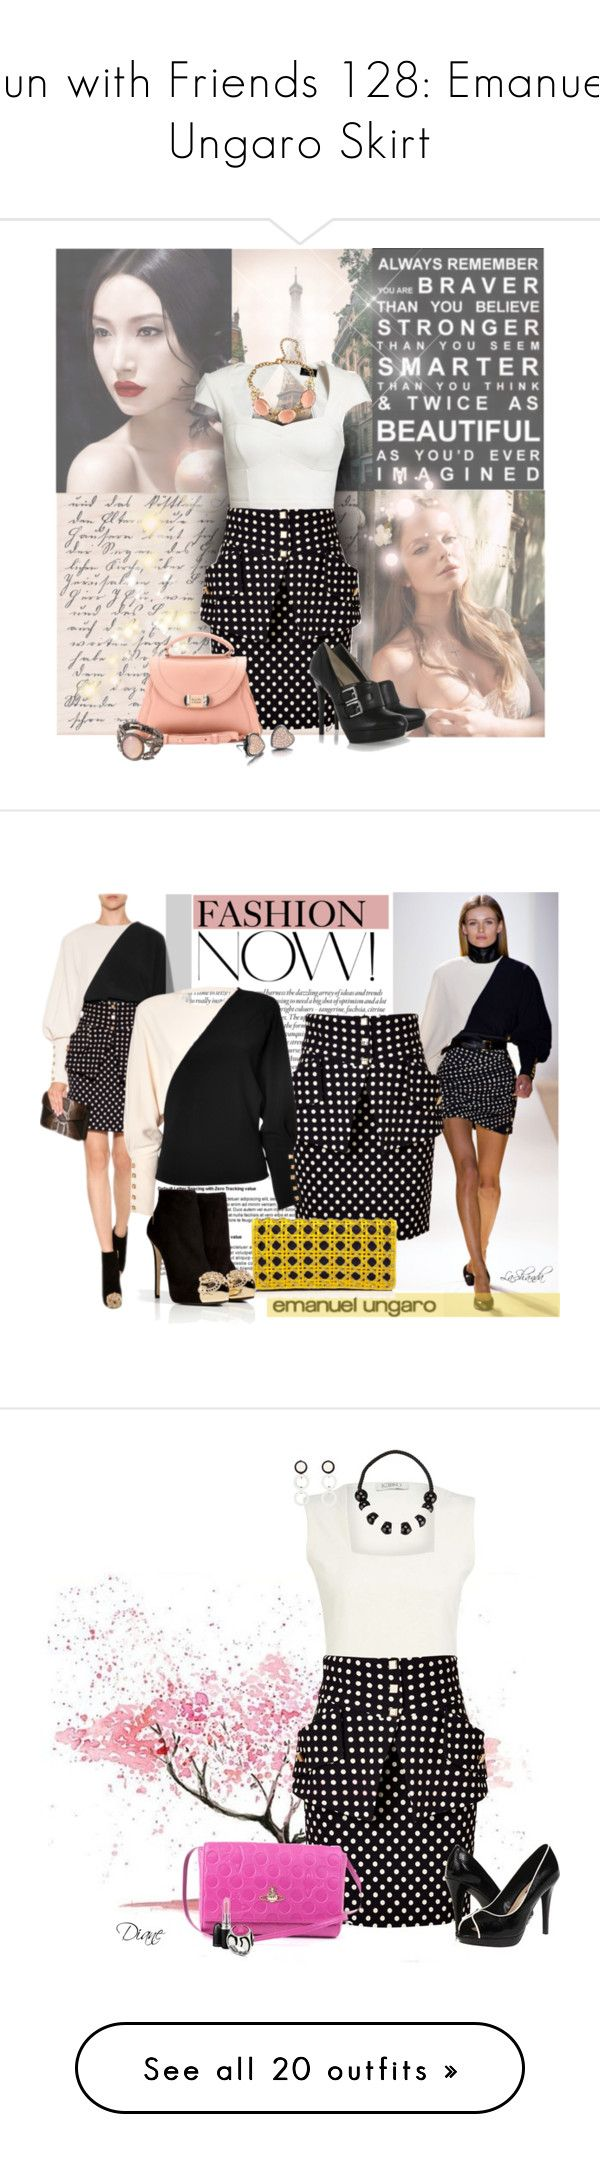 """""""Fun with Friends 128: Emanuel Ungaro Skirt"""" by lashandanista ❤ liked on Polyvore featuring skirts, bottoms, black, faldas, cocktail & party, women, pocket skirt, structured skirt, emanuel ungaro and evening skirts"""